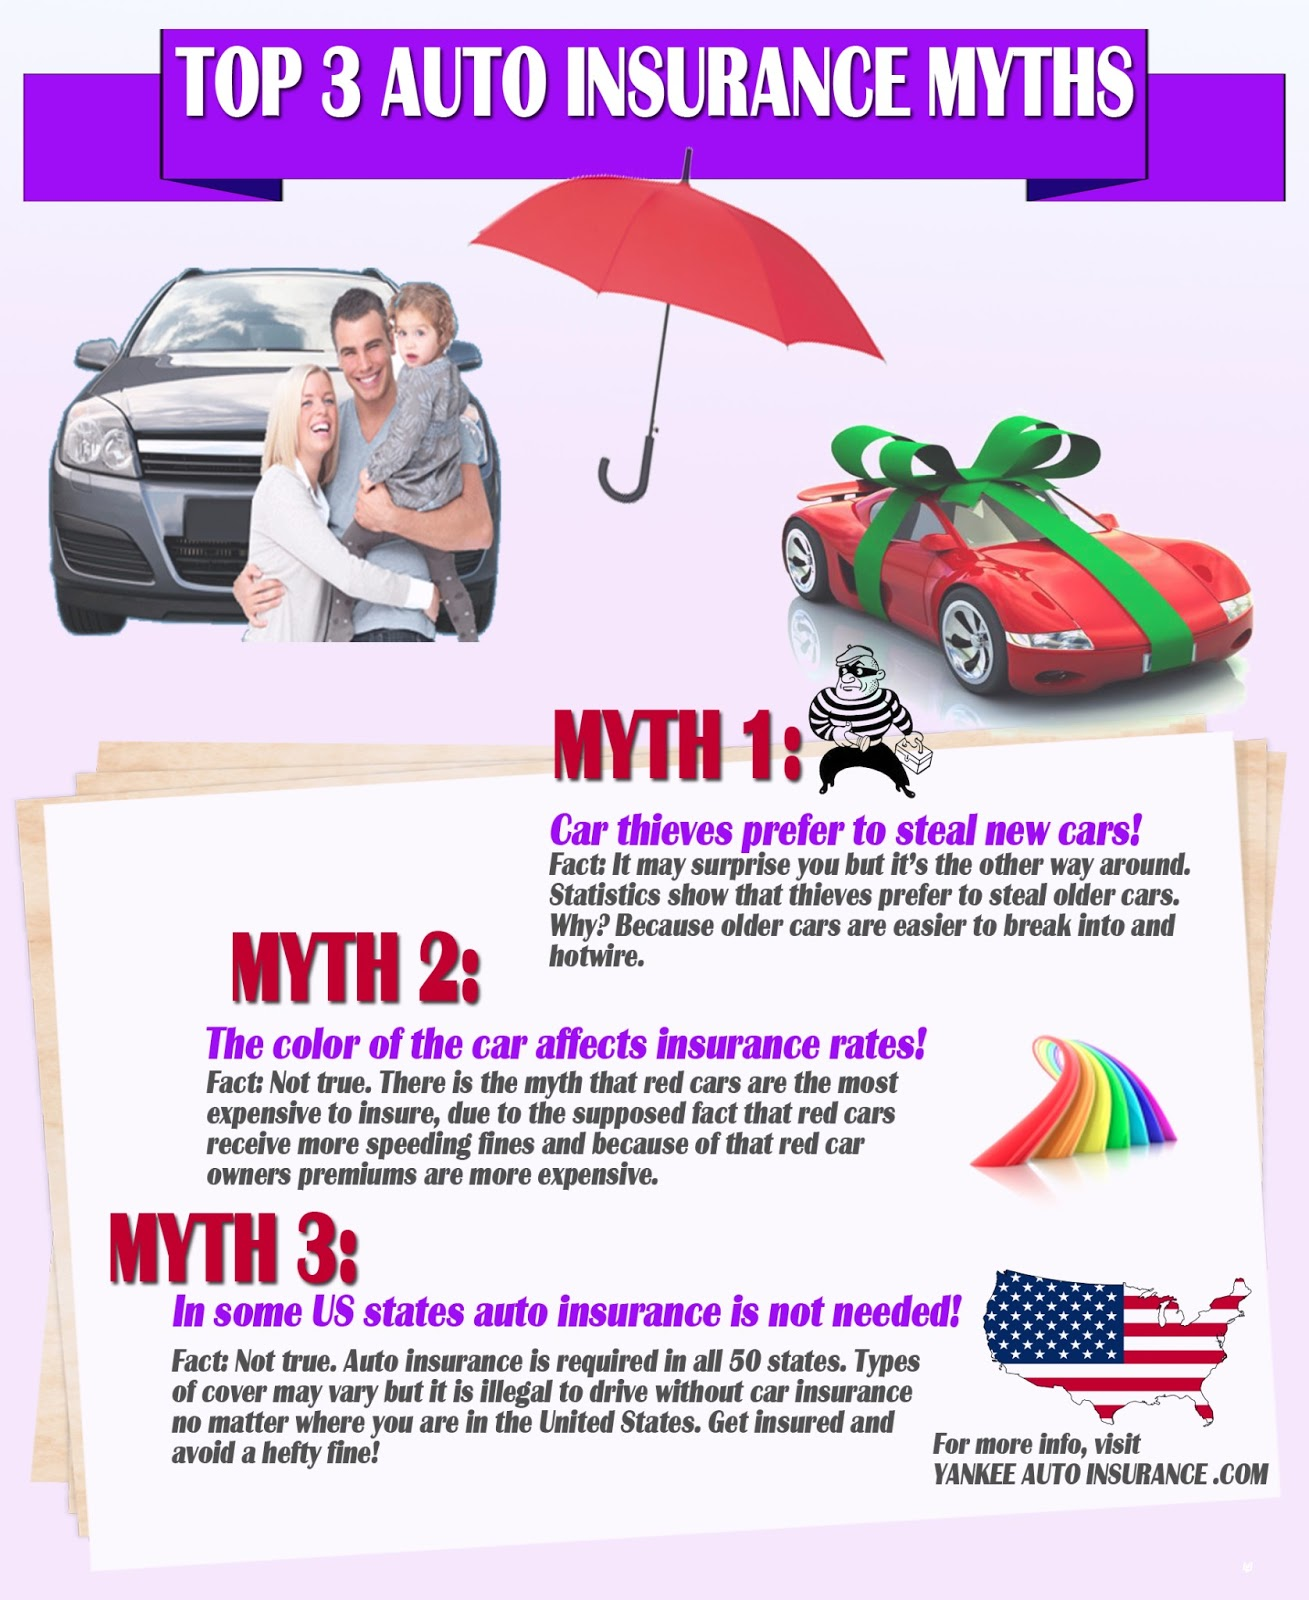 switch to aaa for your car insurance and save with reliable and affordable auto insurance in the state of alabama